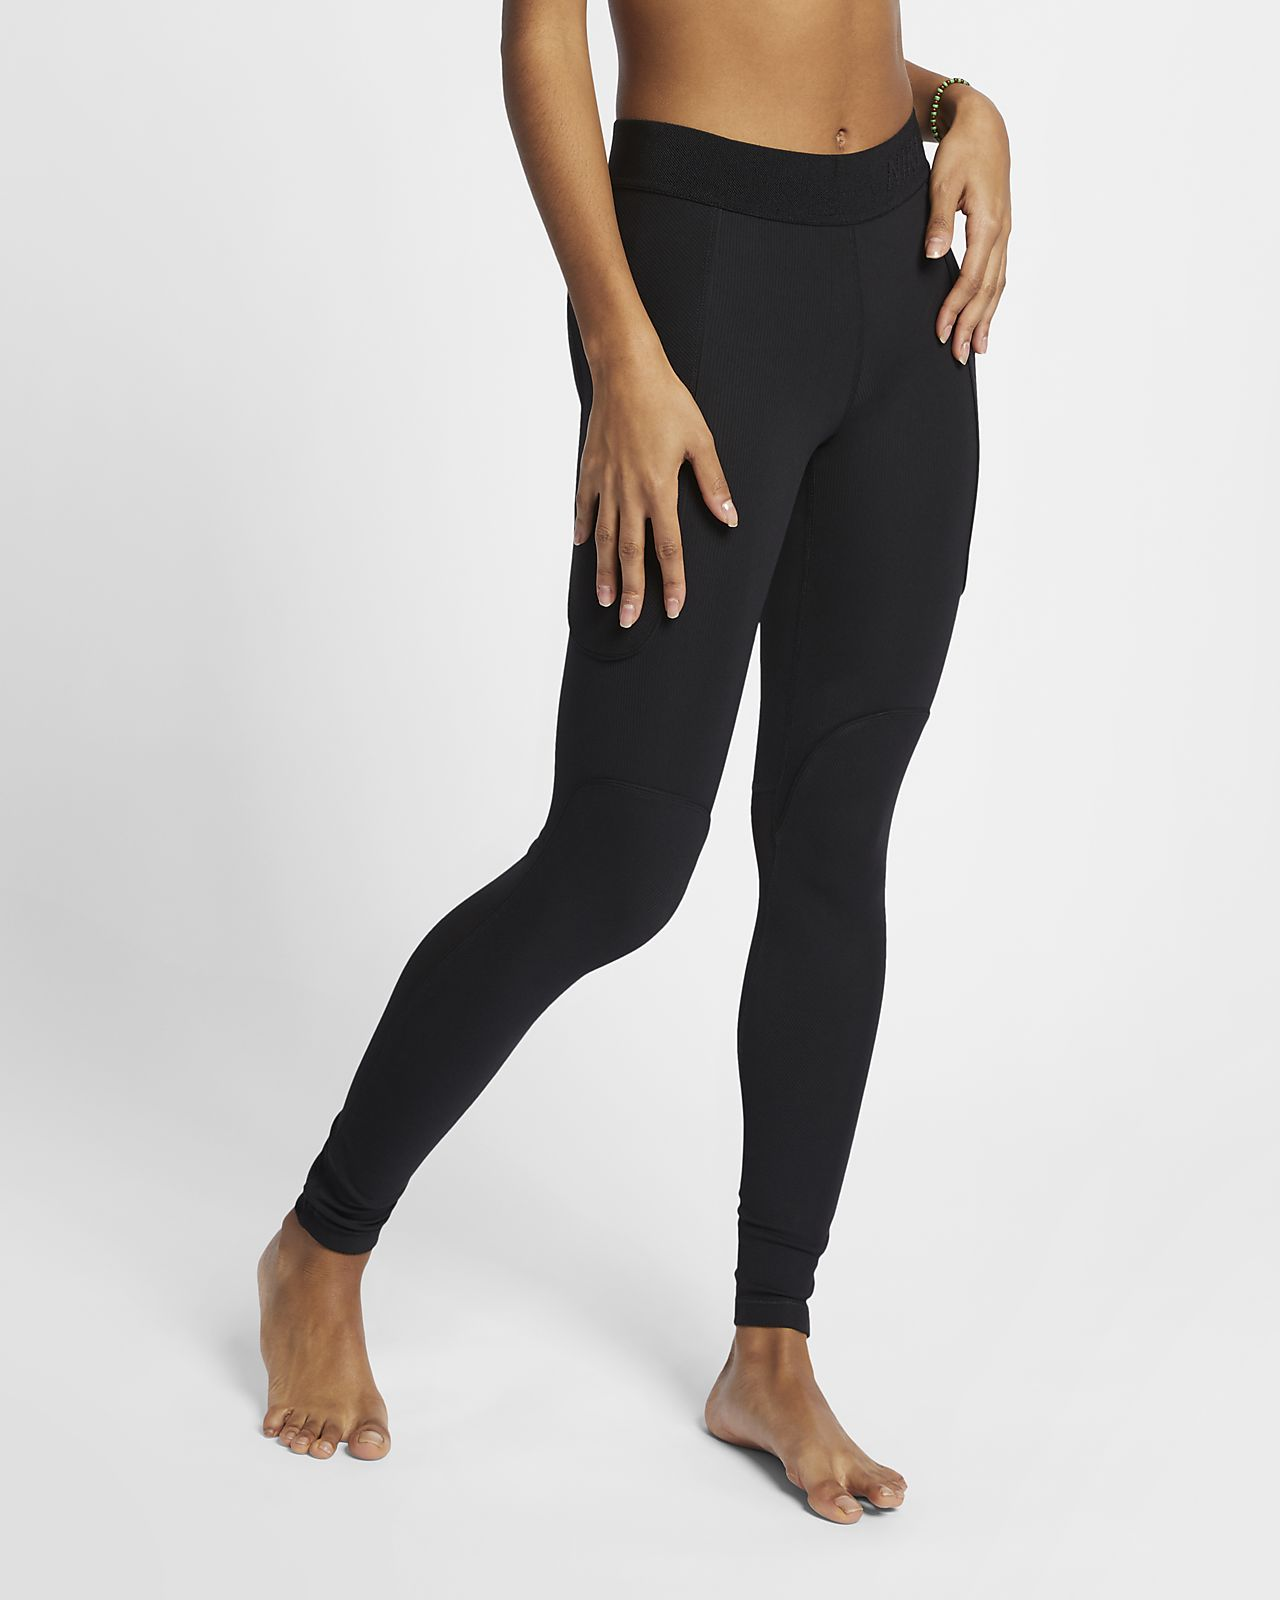 f13b530d94540 Nike Pro HyperCool Women's Ribbed Tights